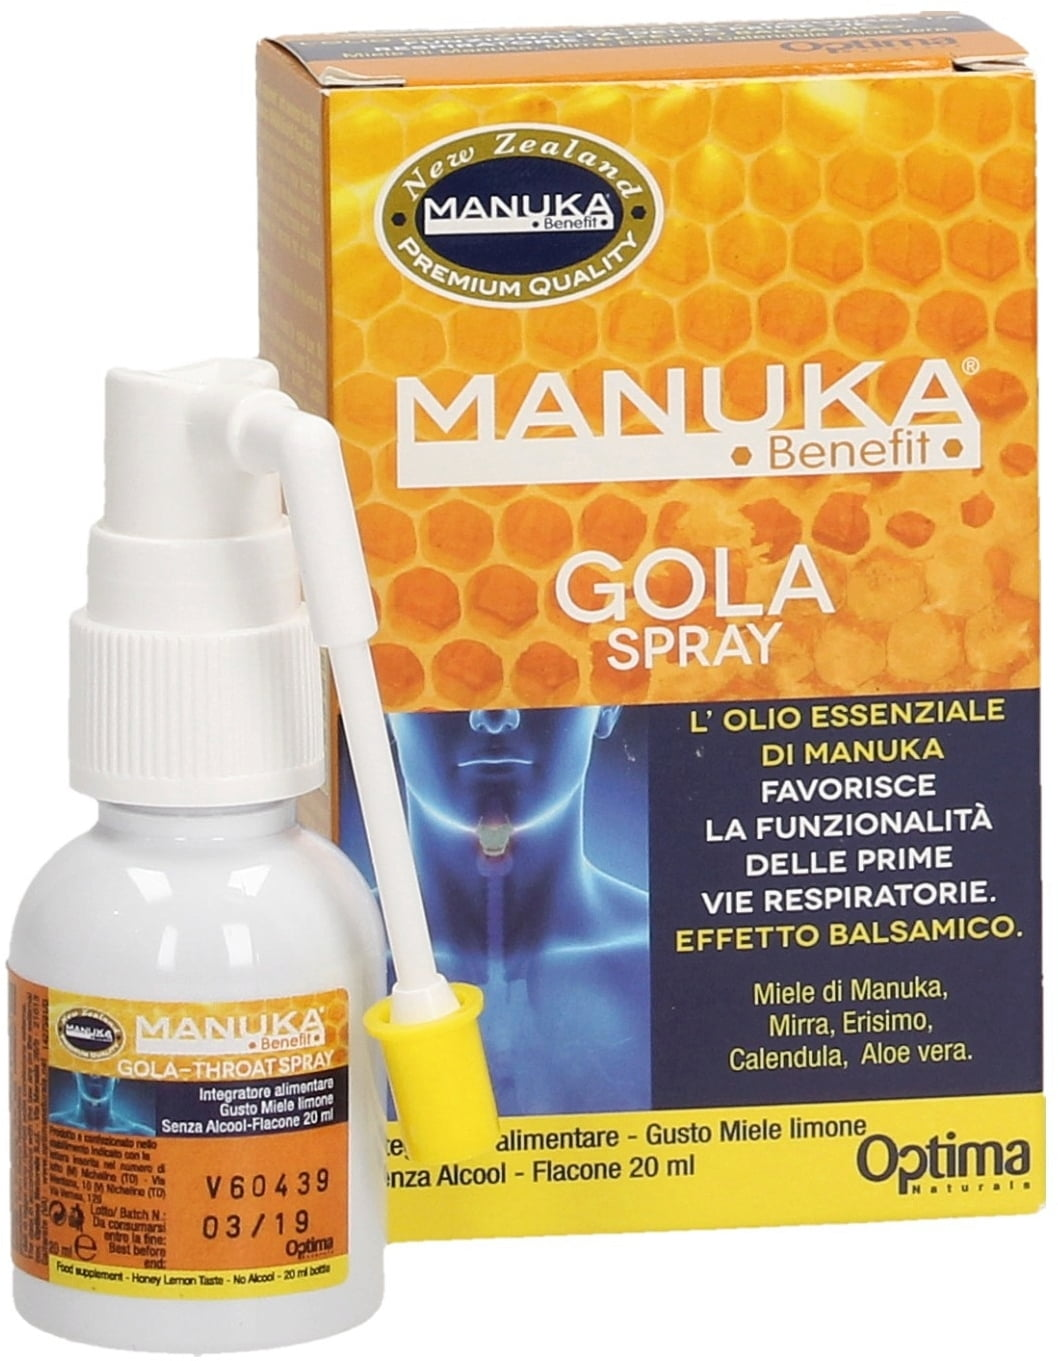 Pintura Para Tela En Spray Leroy Merlin Optima Naturals Manuka Benefit Spray Faringe